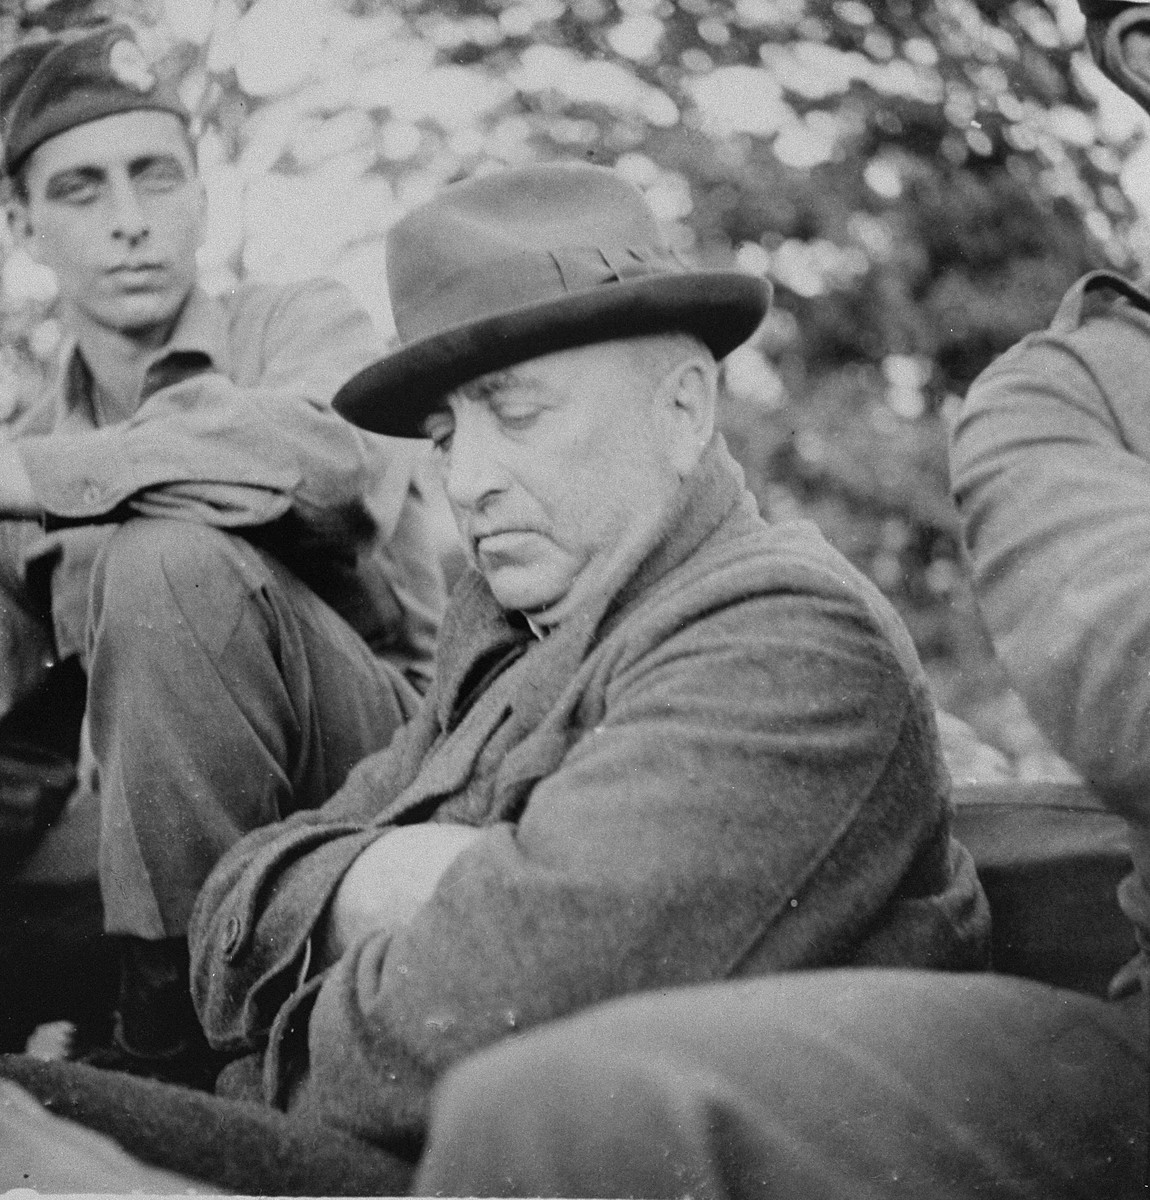 Dr. Robert Ley, the former leader of the German Labor Front (DAF), following his arrest by American troops with the 101st U.S. Airborne Division at his mountain home near the Austrian border.  The American soldier pictured is  Robert Guggenheim.   At the time of his capture, Ley was posing as Dr. Ernst Distelmeyer, but he was identified by Franz Xaver Schwarz, the former treasurer of the Nazi Party and one of Ley's oldest enemies.